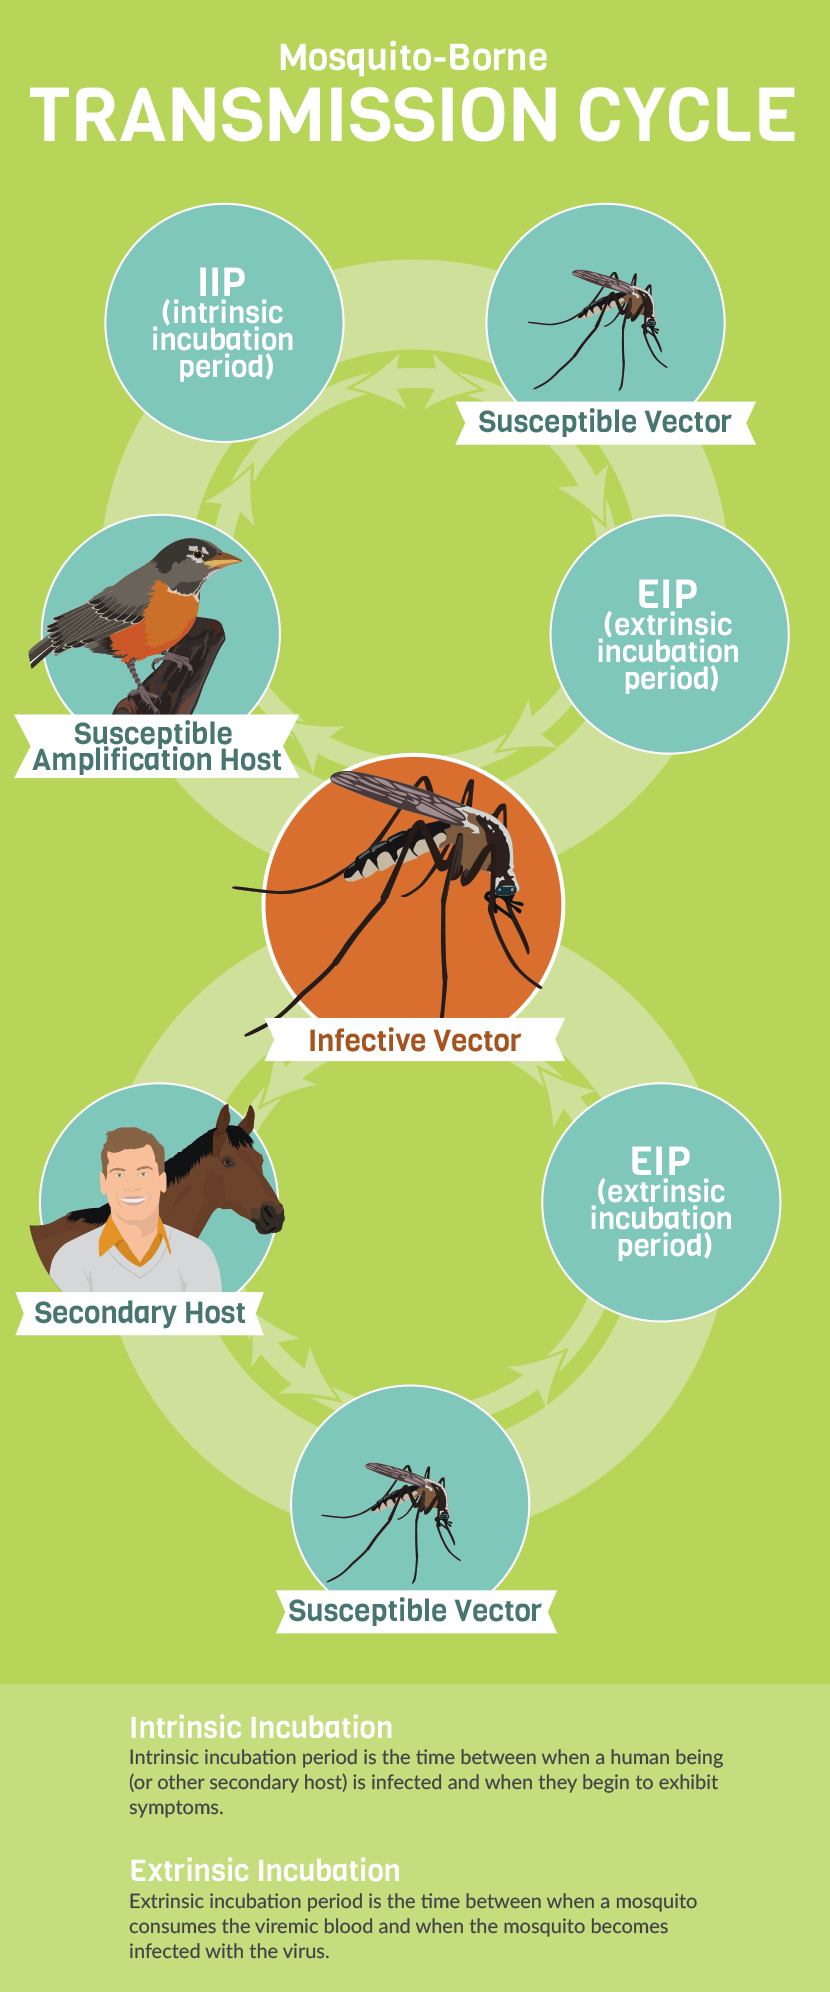 Mosquitoes and Illness: How Mosquitoes Become Infected and Spread Disease